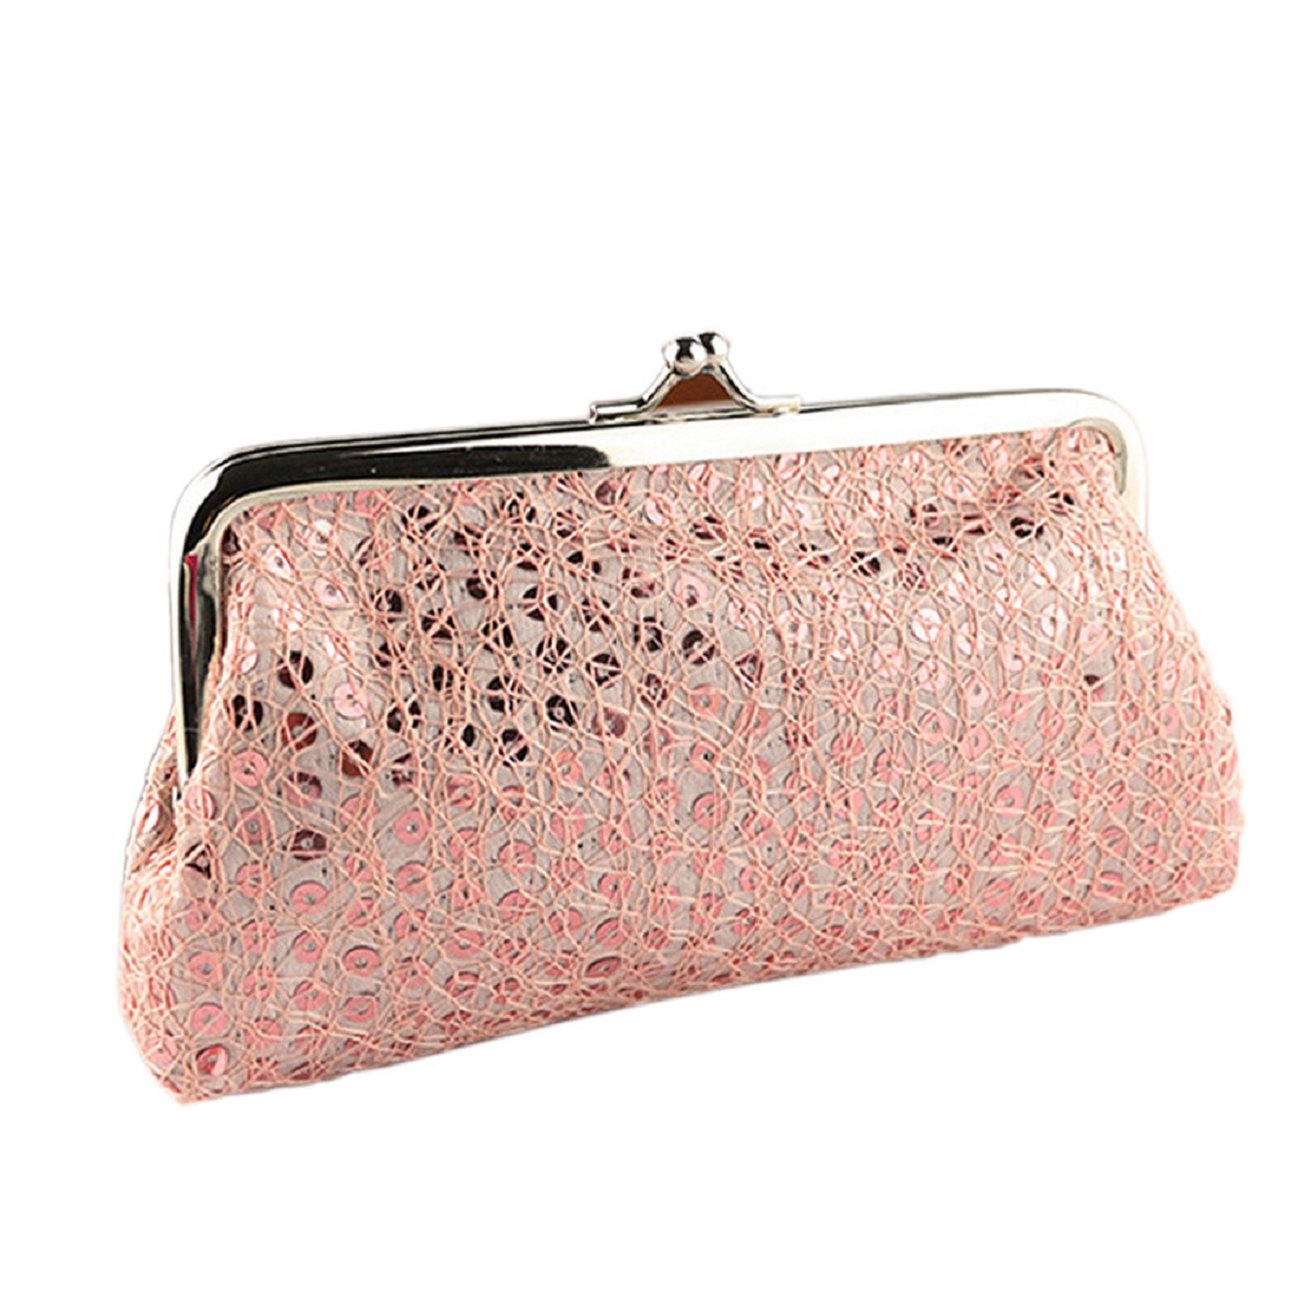 Tonsee Fashion Lady Lovely Style Hasp Sequins Purse Clutch Bag Party Handbag DREM-2354